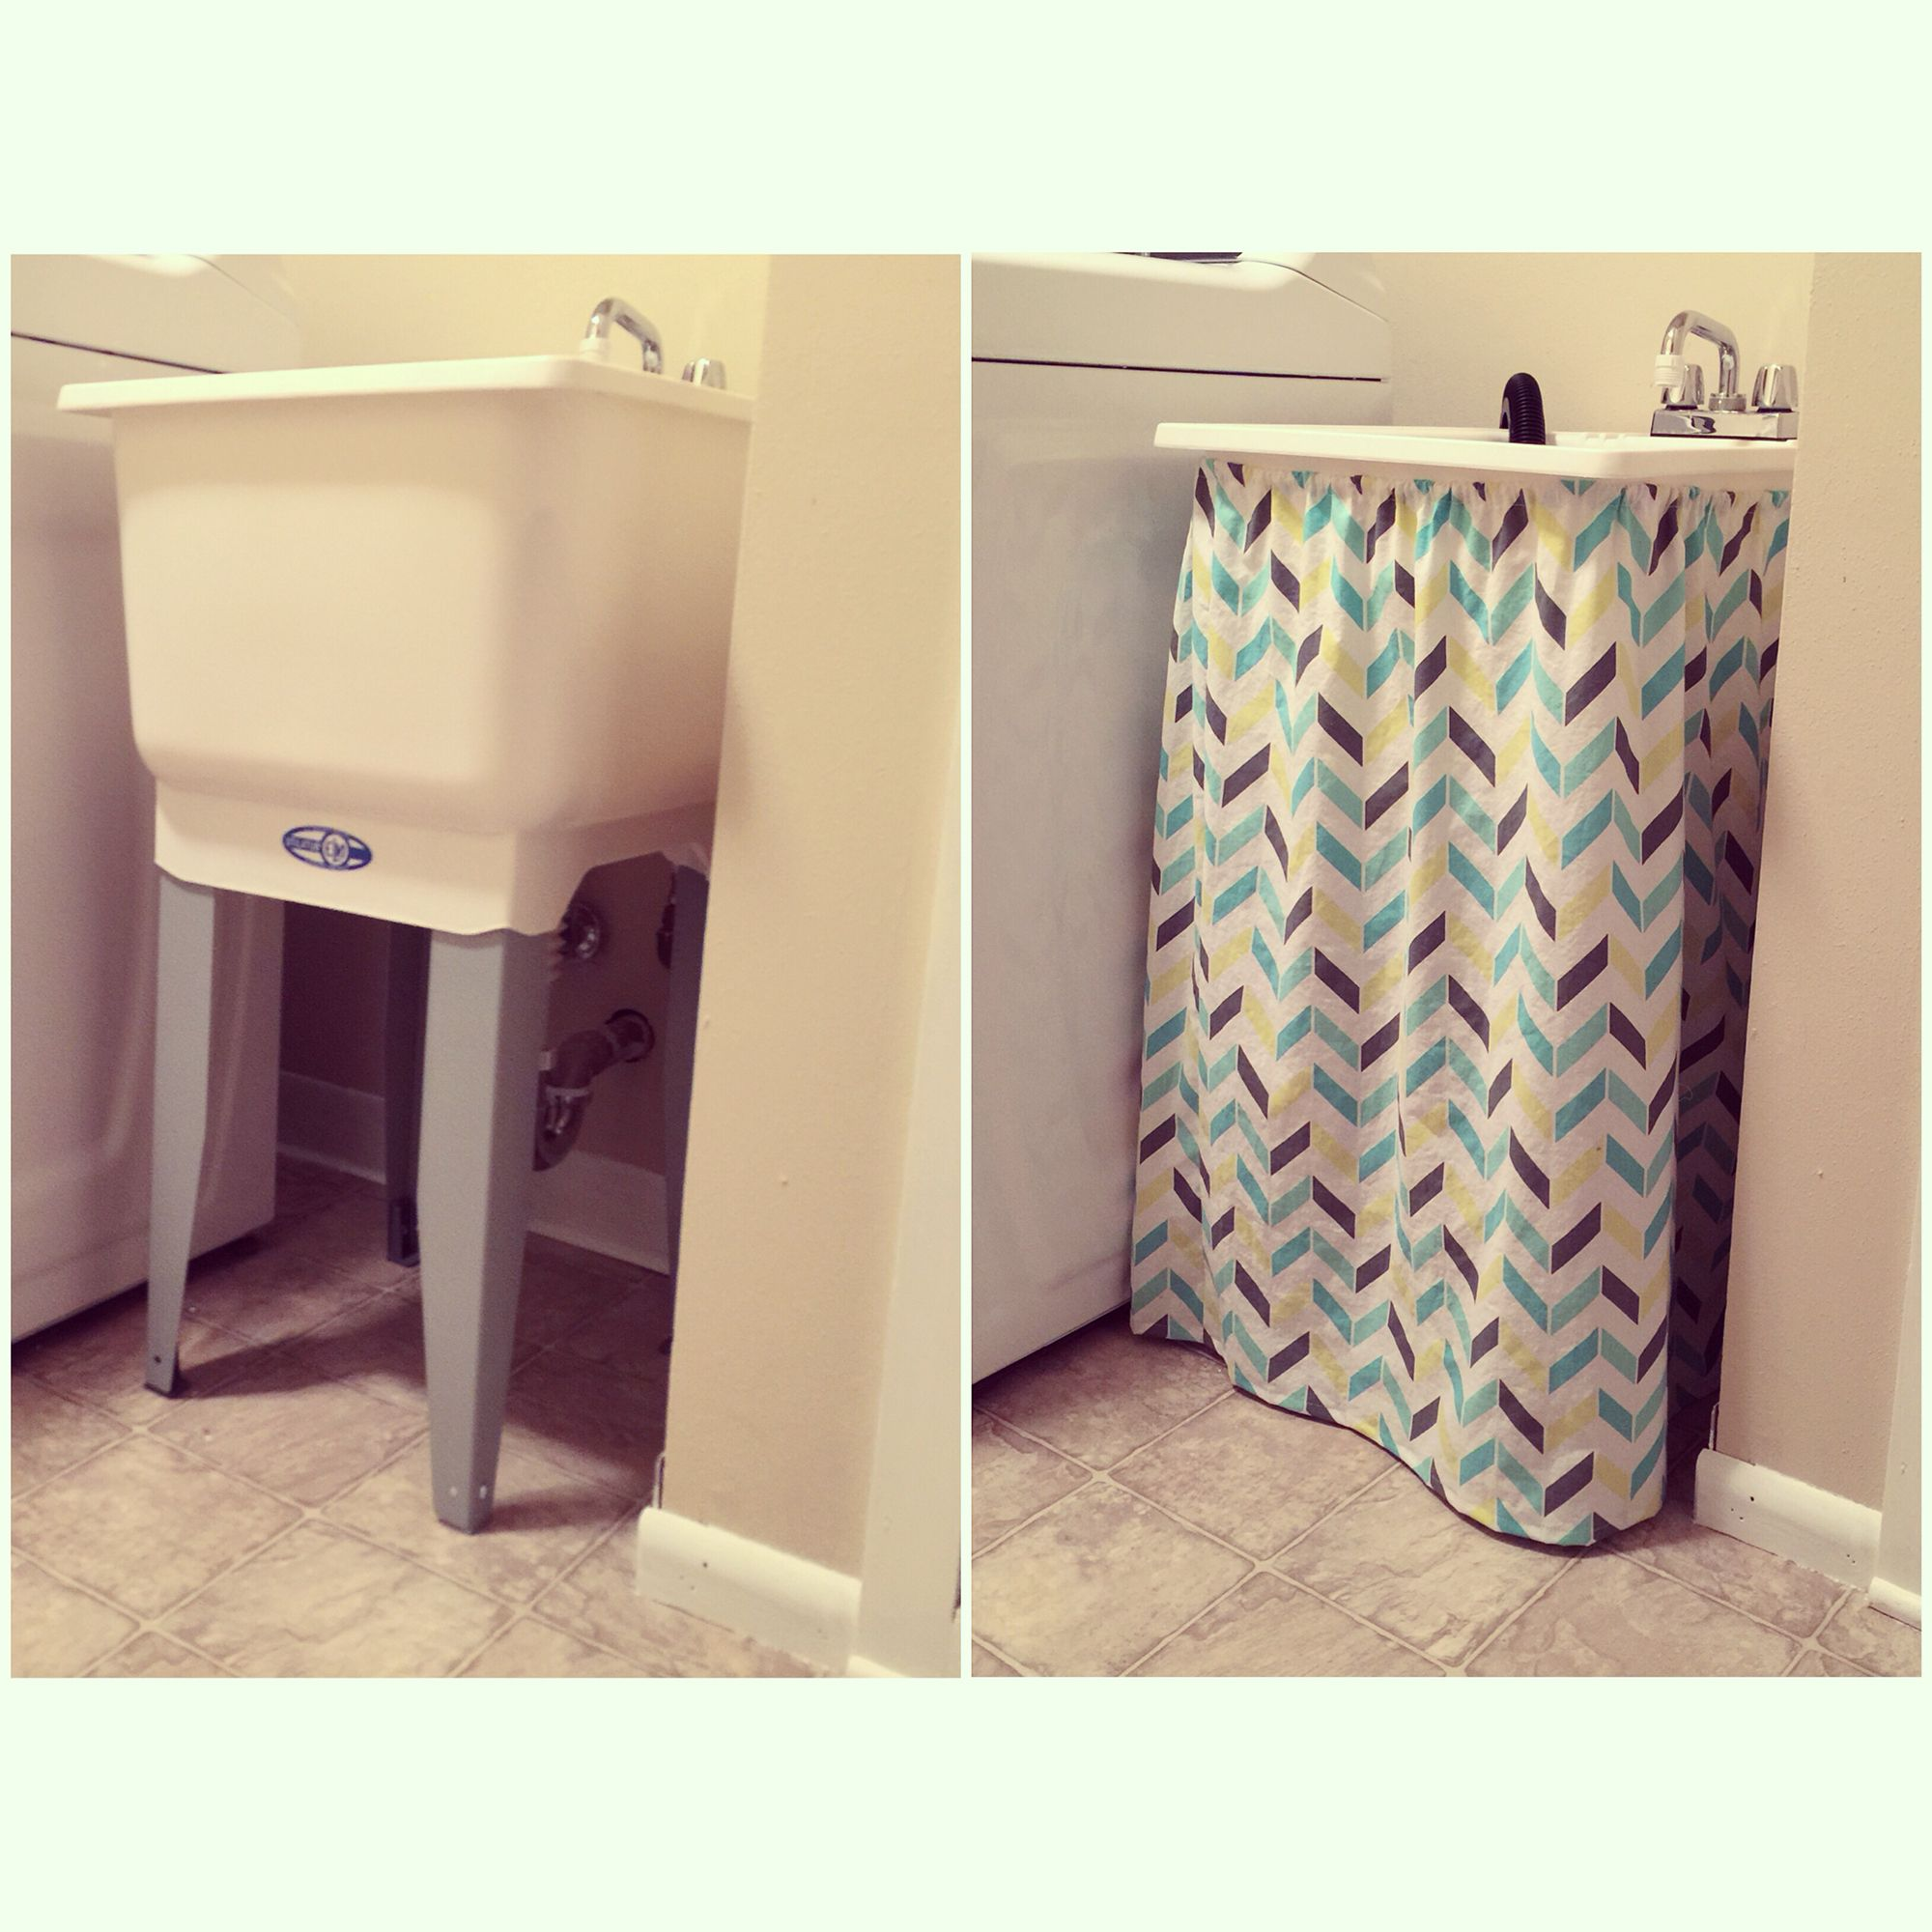 Diy Utility Stationary Tub Skirt Cover Laundry Room Decor You Just Need A Fabric Of Your Choice And Elastic Laundry Room Decor Tub Cover Laundry Tubs